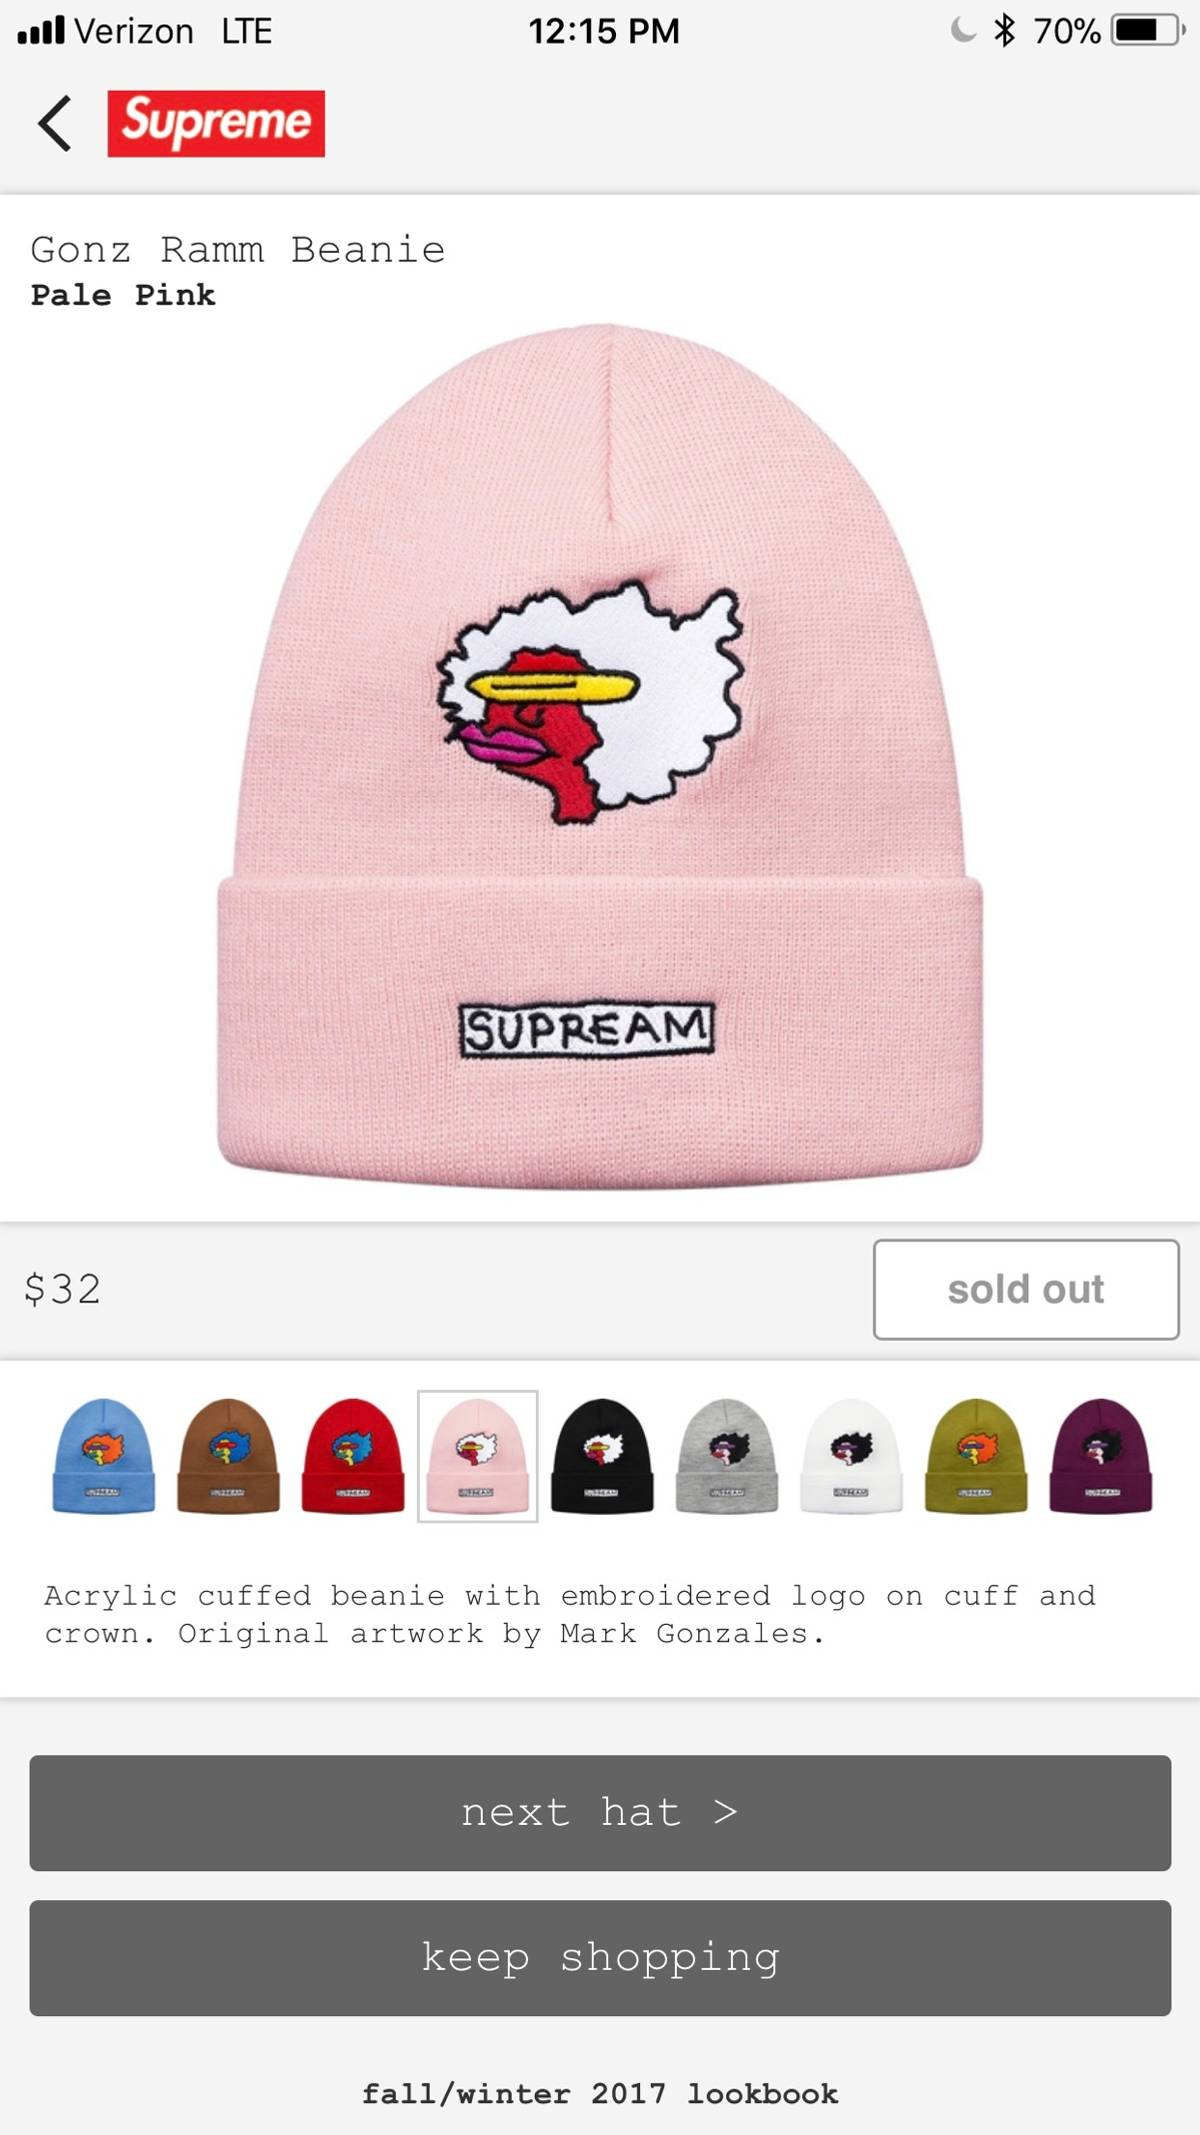 62e7d8deede Supreme Gonz Ramm Beanie Pale Pink Size one size - Hats for Sale ...